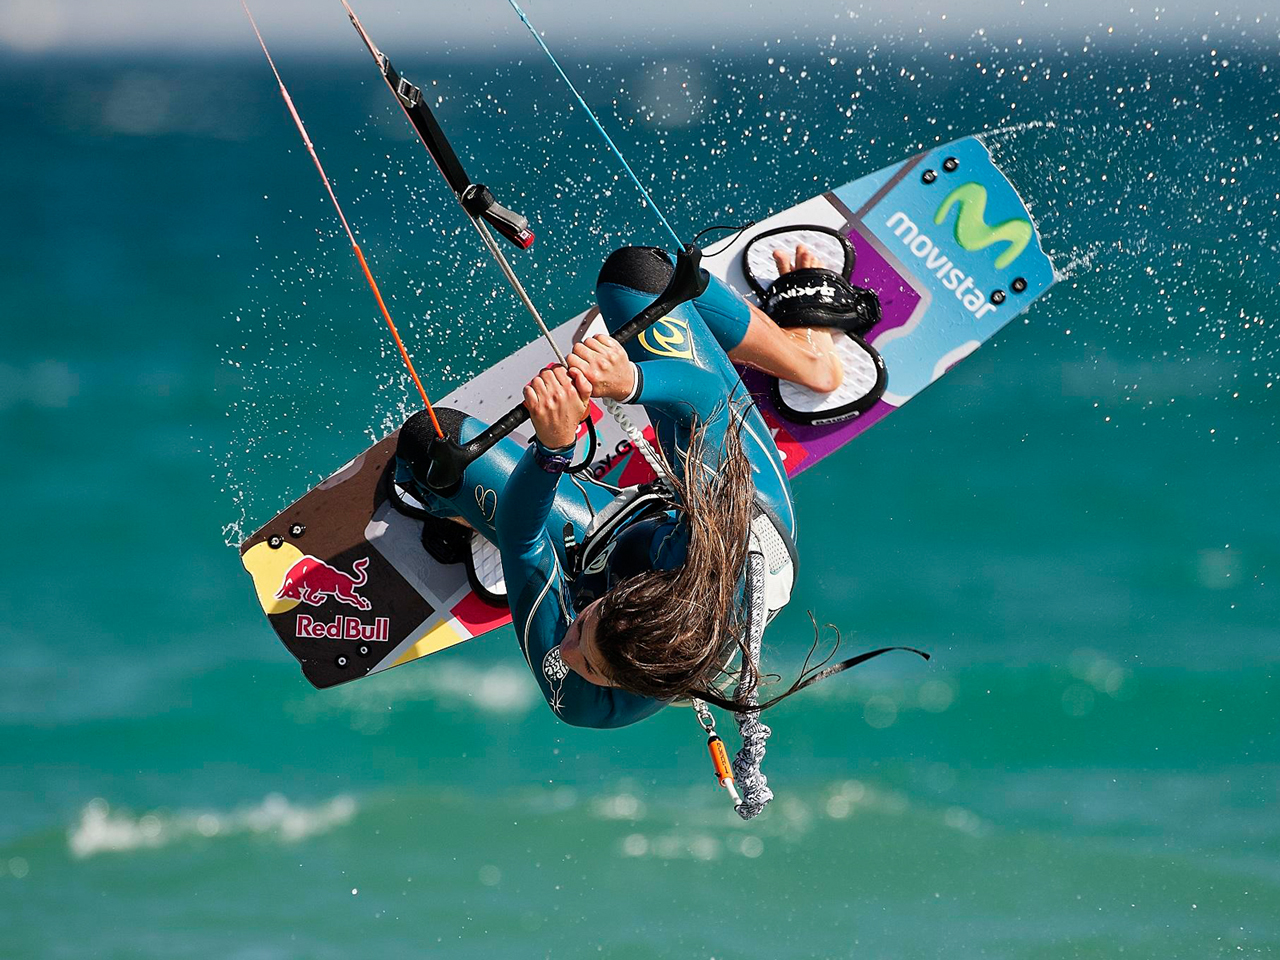 kitesurf wallpaper image - Gisela Pulido giving it all during contest - in resolution: Standard 4:3 1280 X 960